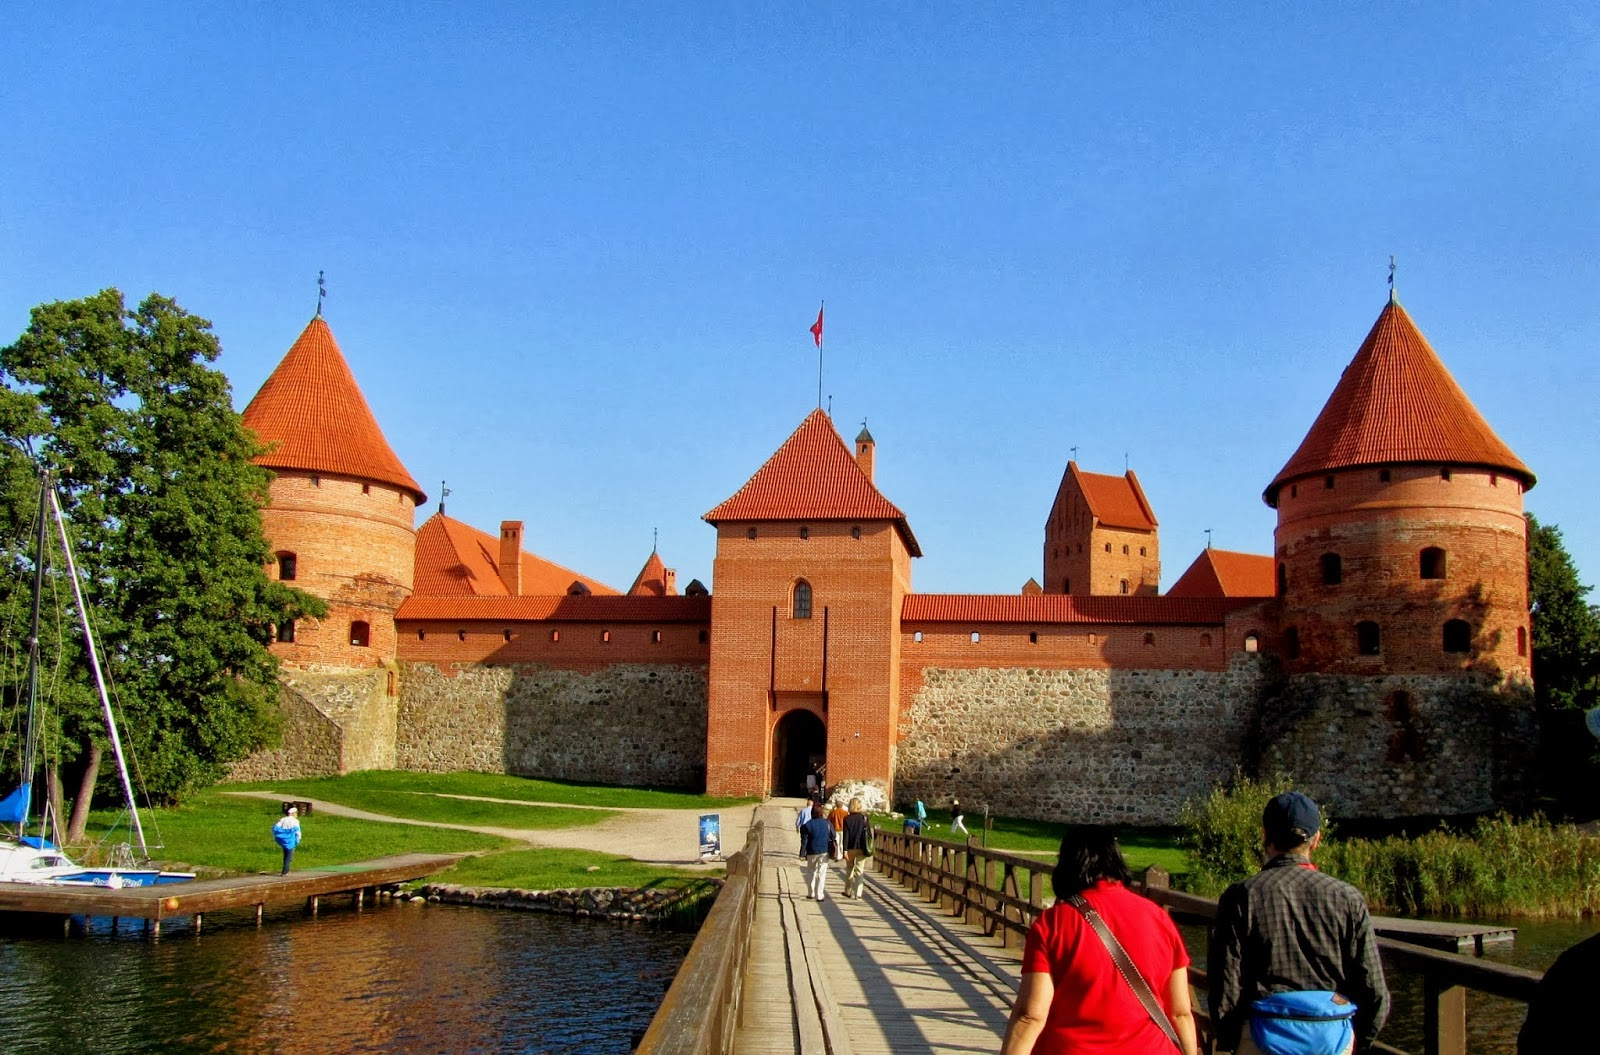 Pritam Rohila Travels: 2012, SEPTEMBER 12: LITHUANIA, TRAKAI CASTLE 526